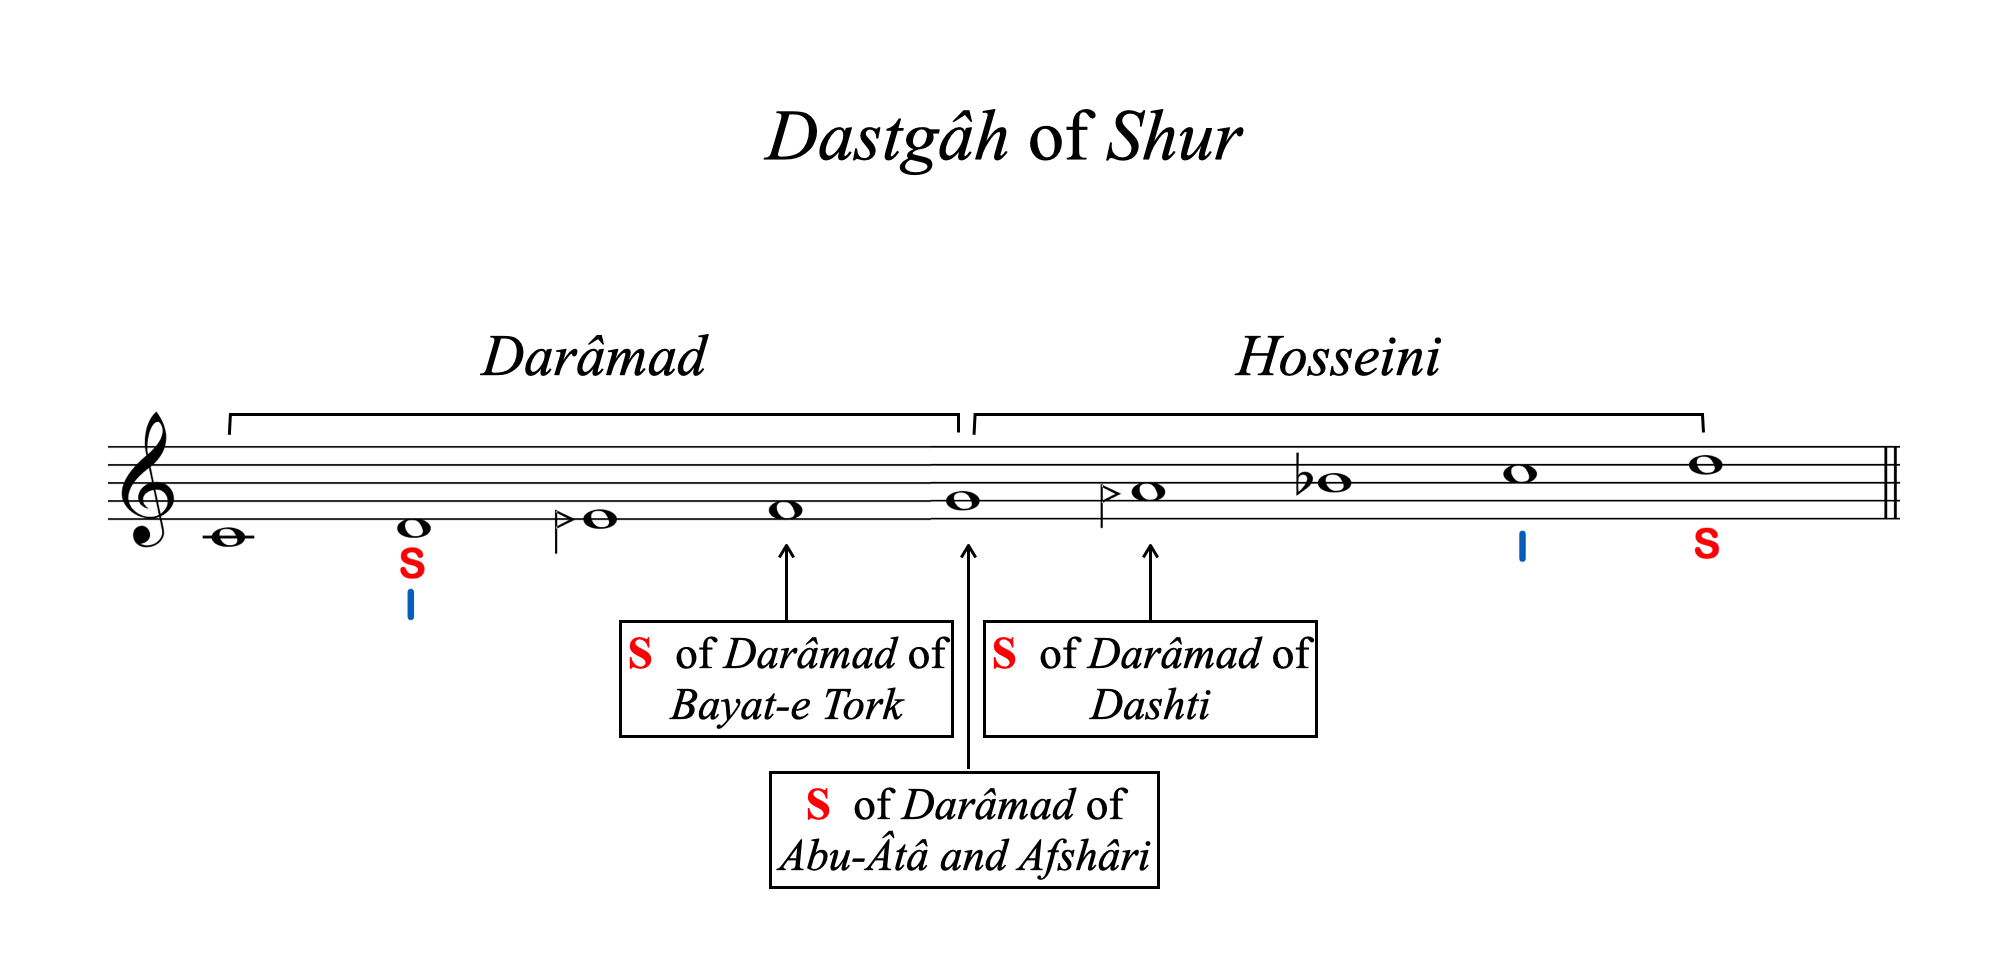 Daramad and Hosseini Shur